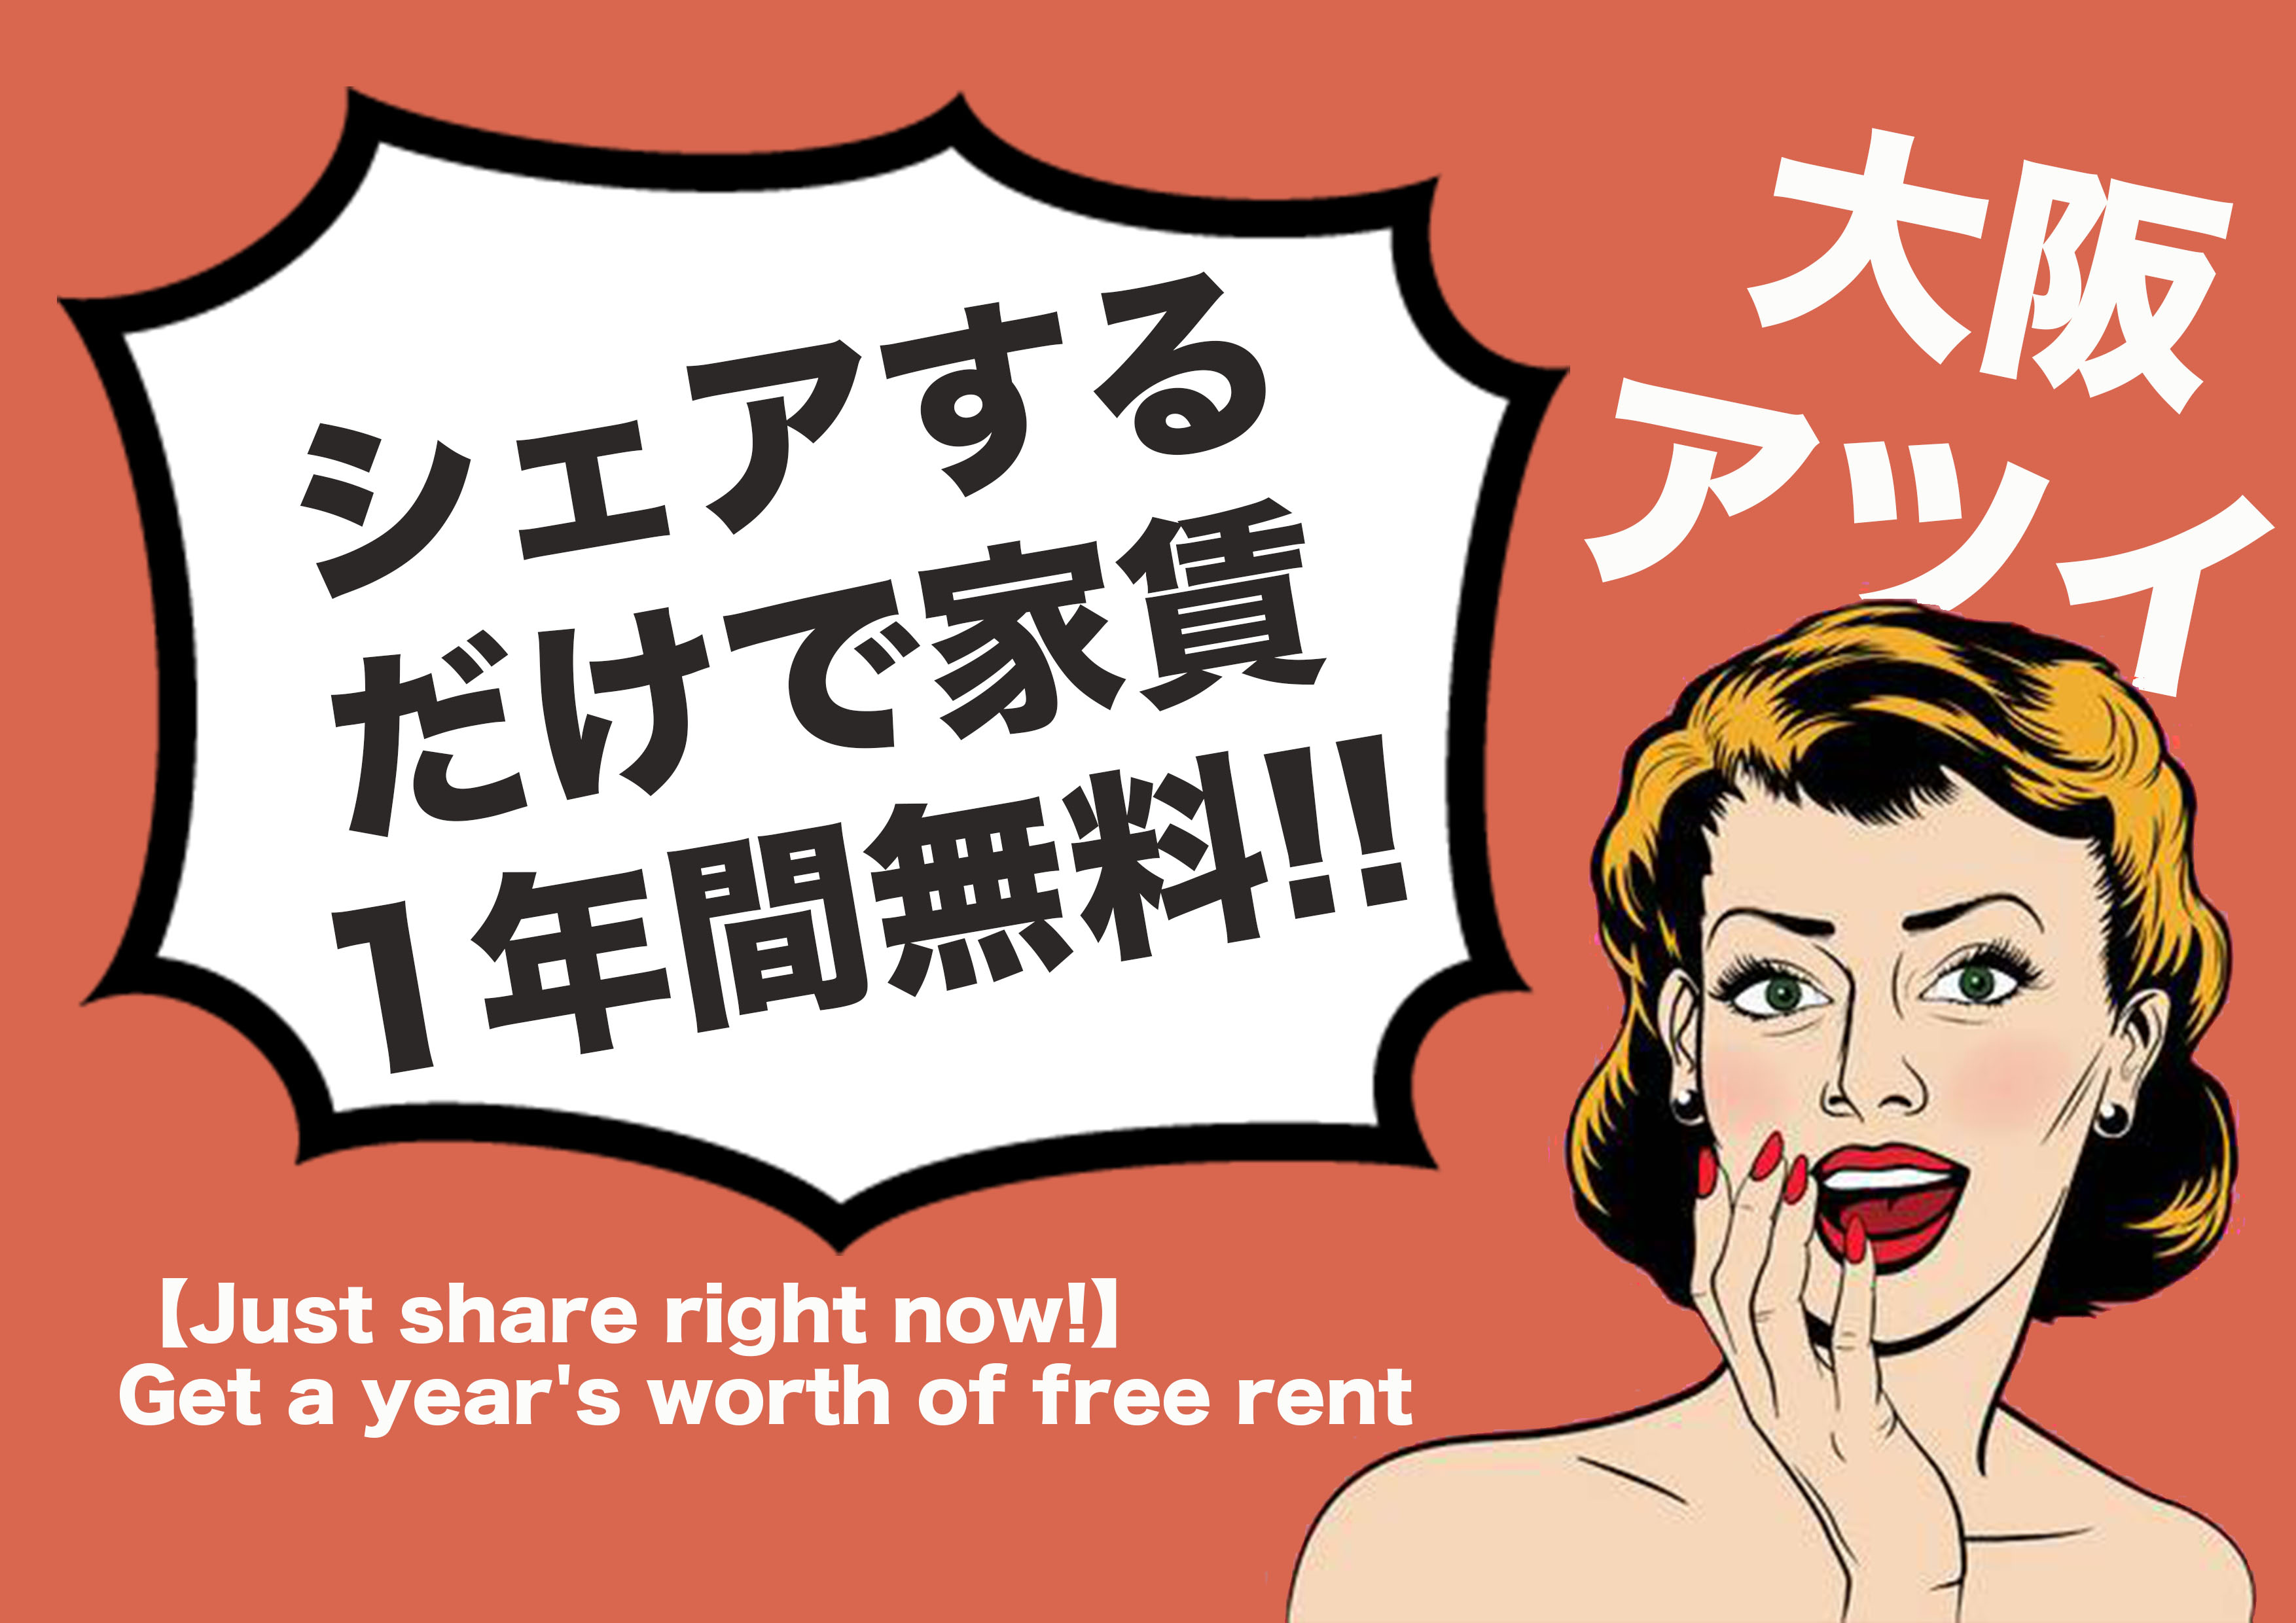 A sharehouse in Osaka? Check the Kizunaya sharehouses in Osaka < Share and get free rent for a year!>